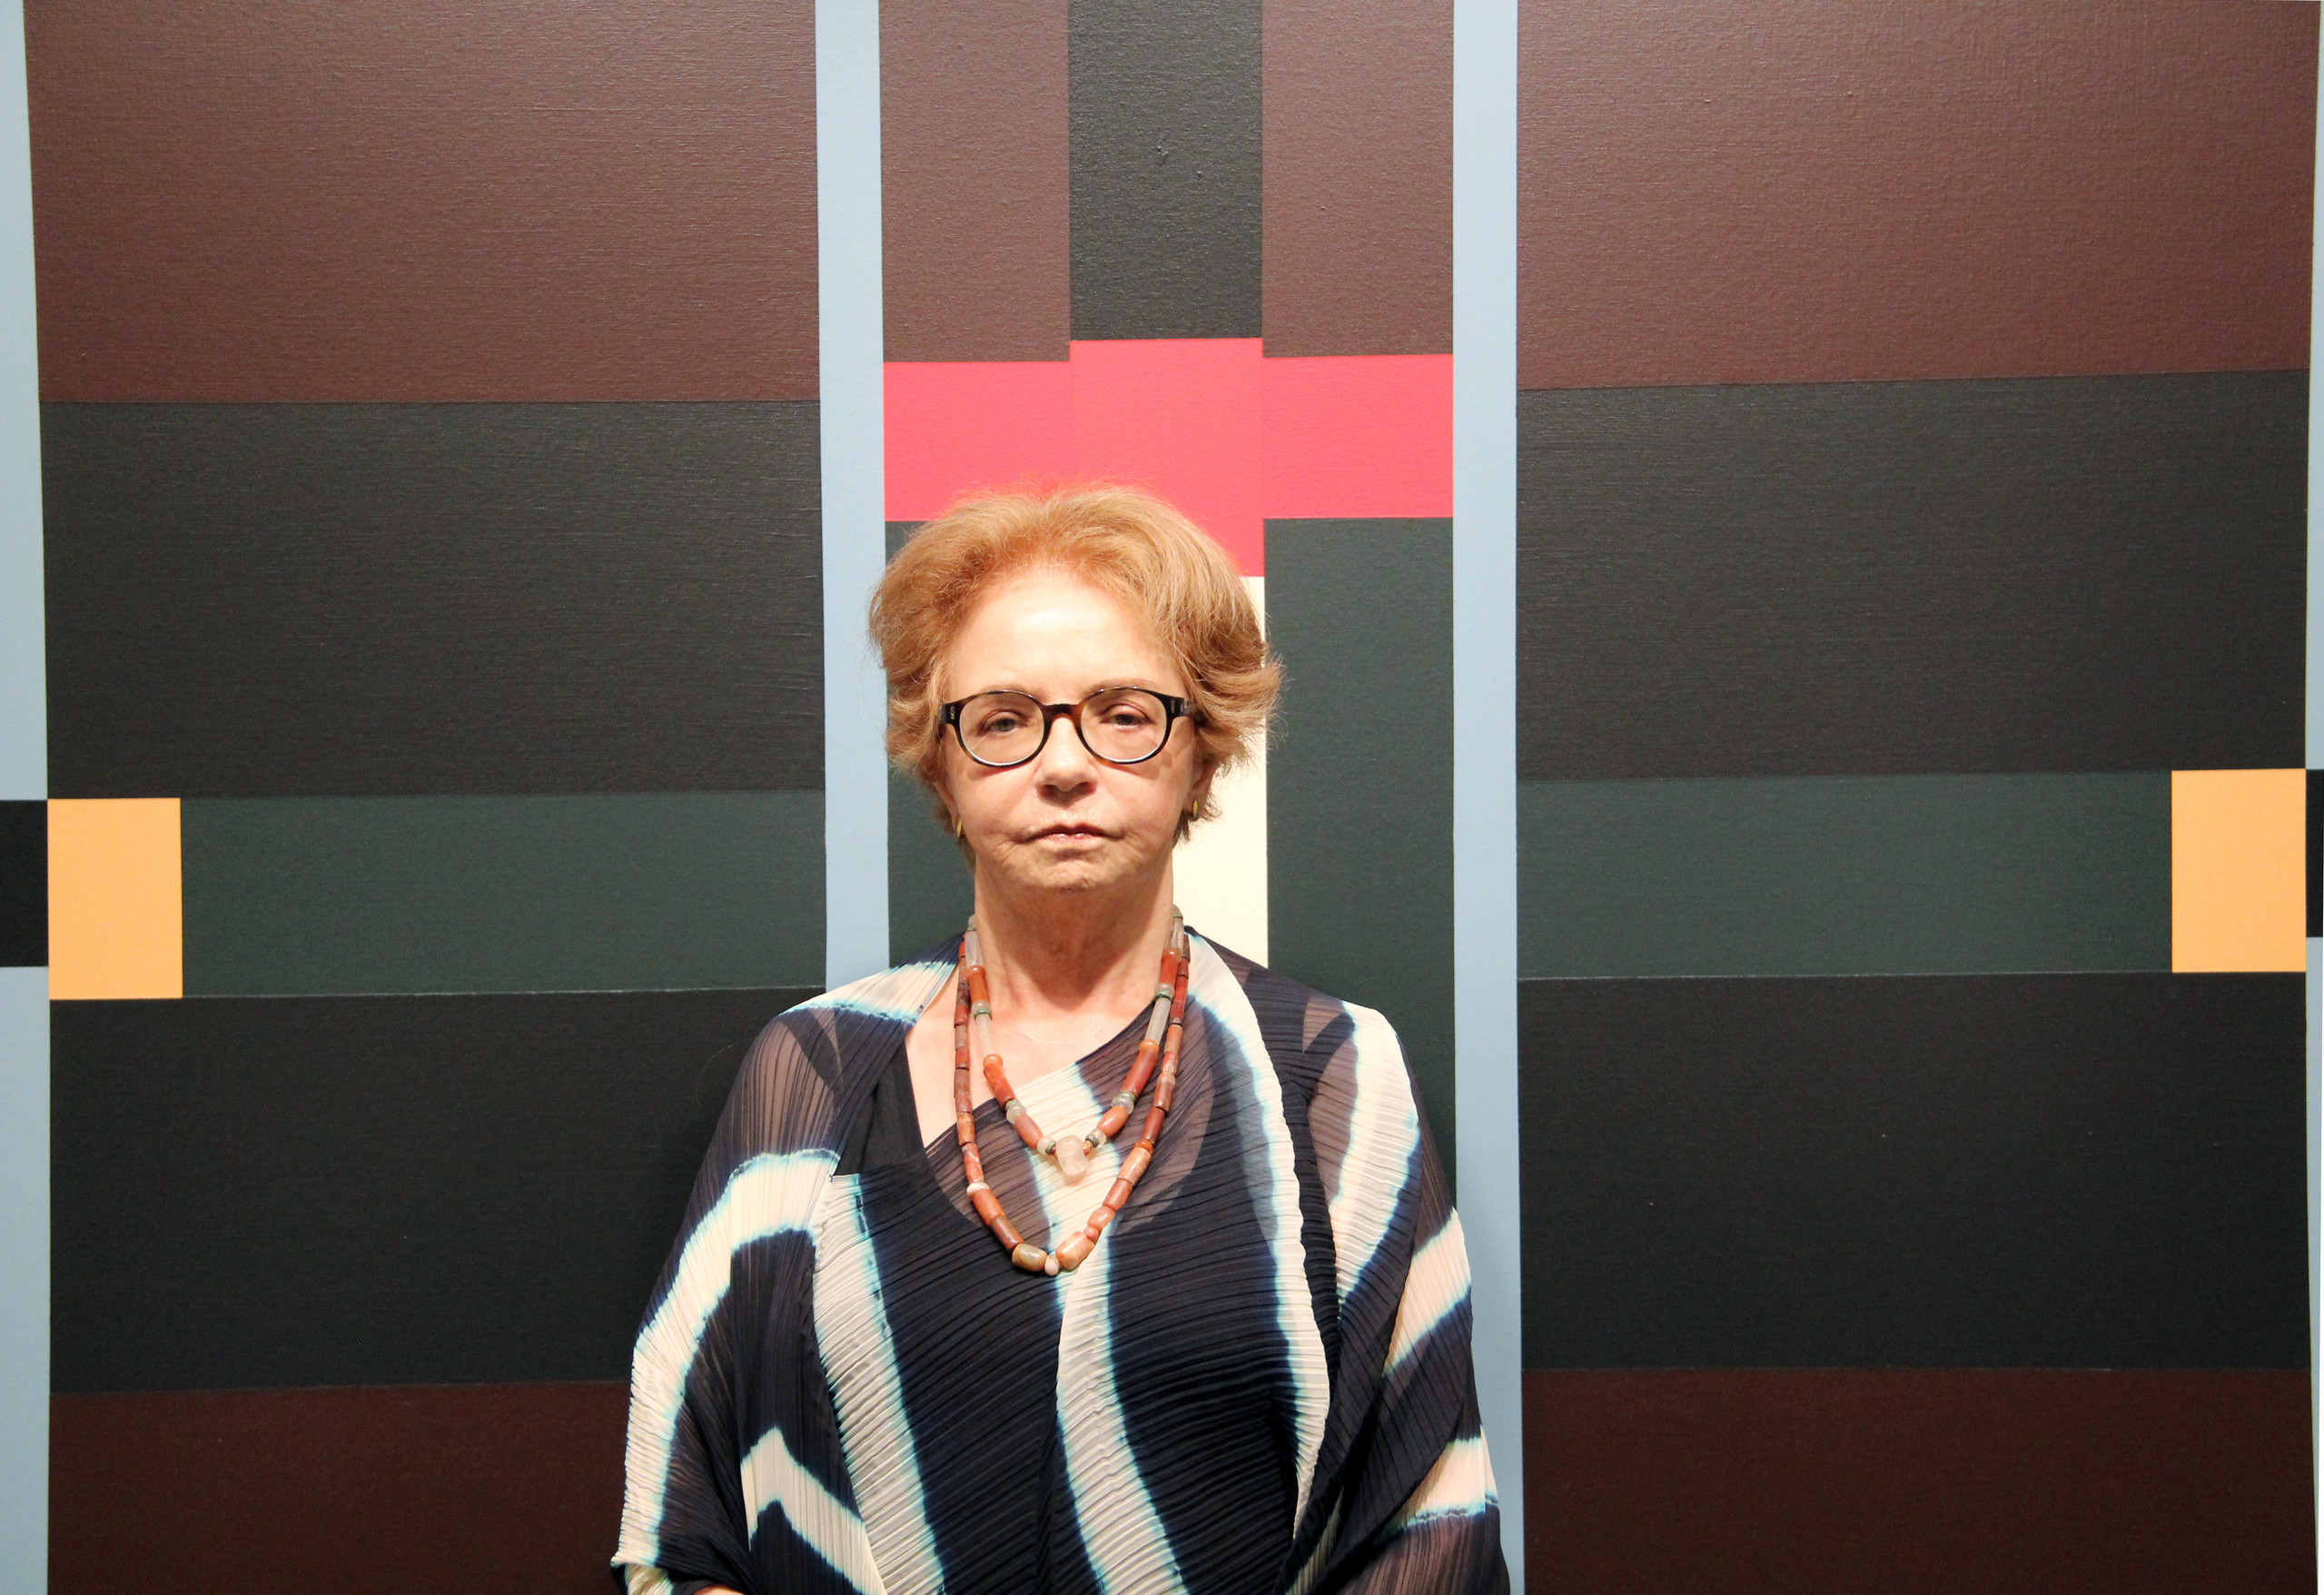 A light-skinned older woman with short, light brown hair stands in front of an abstract painting. She wears glasses, a black and white striped shirt, and two beaded necklaces. The painting behind her depicts black and maroon planes atop which red, teal, peach, and light blue lines and rectangles are rendered.